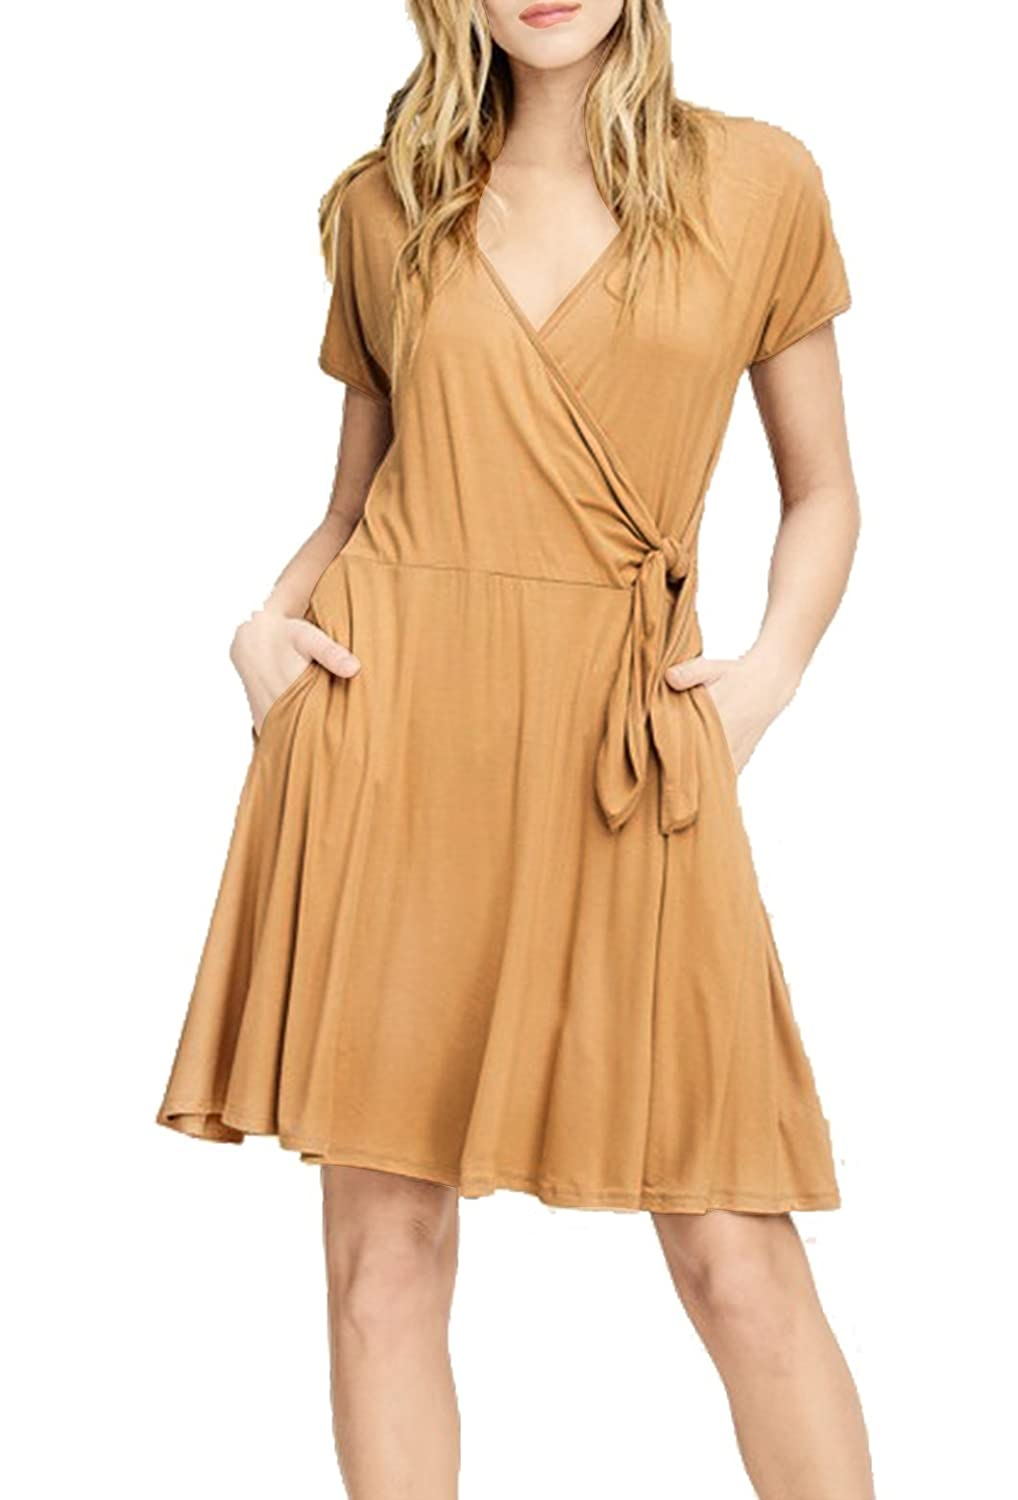 6befb1a5892d Simple summer knit wrap dress with pockets. Lightweight, airy and  comfortable for hot summer days. Quaint details include a v-neckline, short  sleeves and a ...